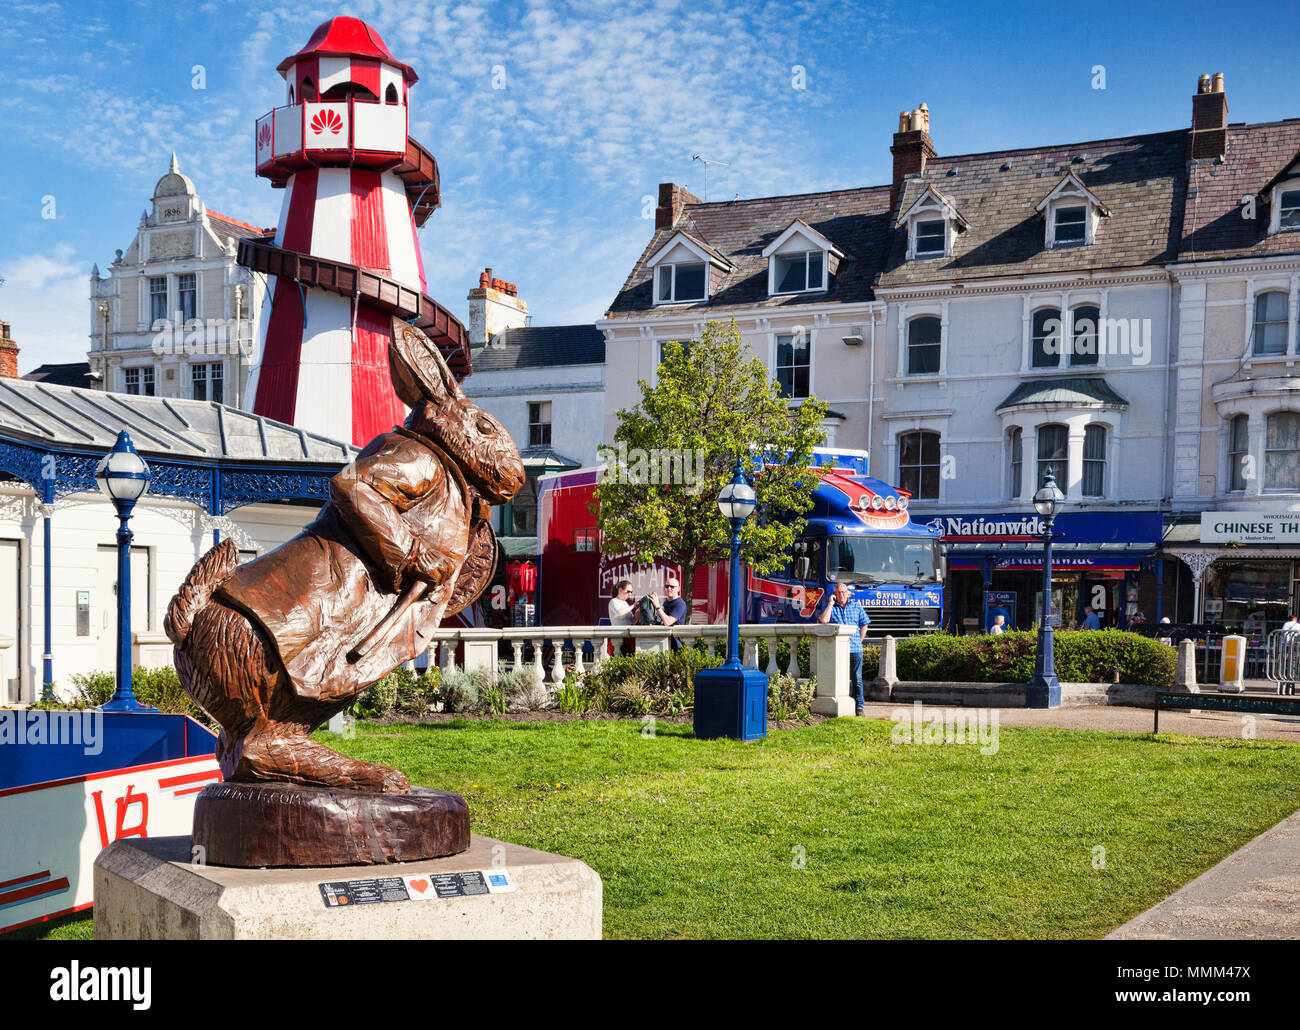 7 May 2018: Llandudno, Conwy, North Wales - White Rabbit oak sculpture, by Simon Hedger, part of the Alice in Wonderland Trail, with some of the attra - Stock Image